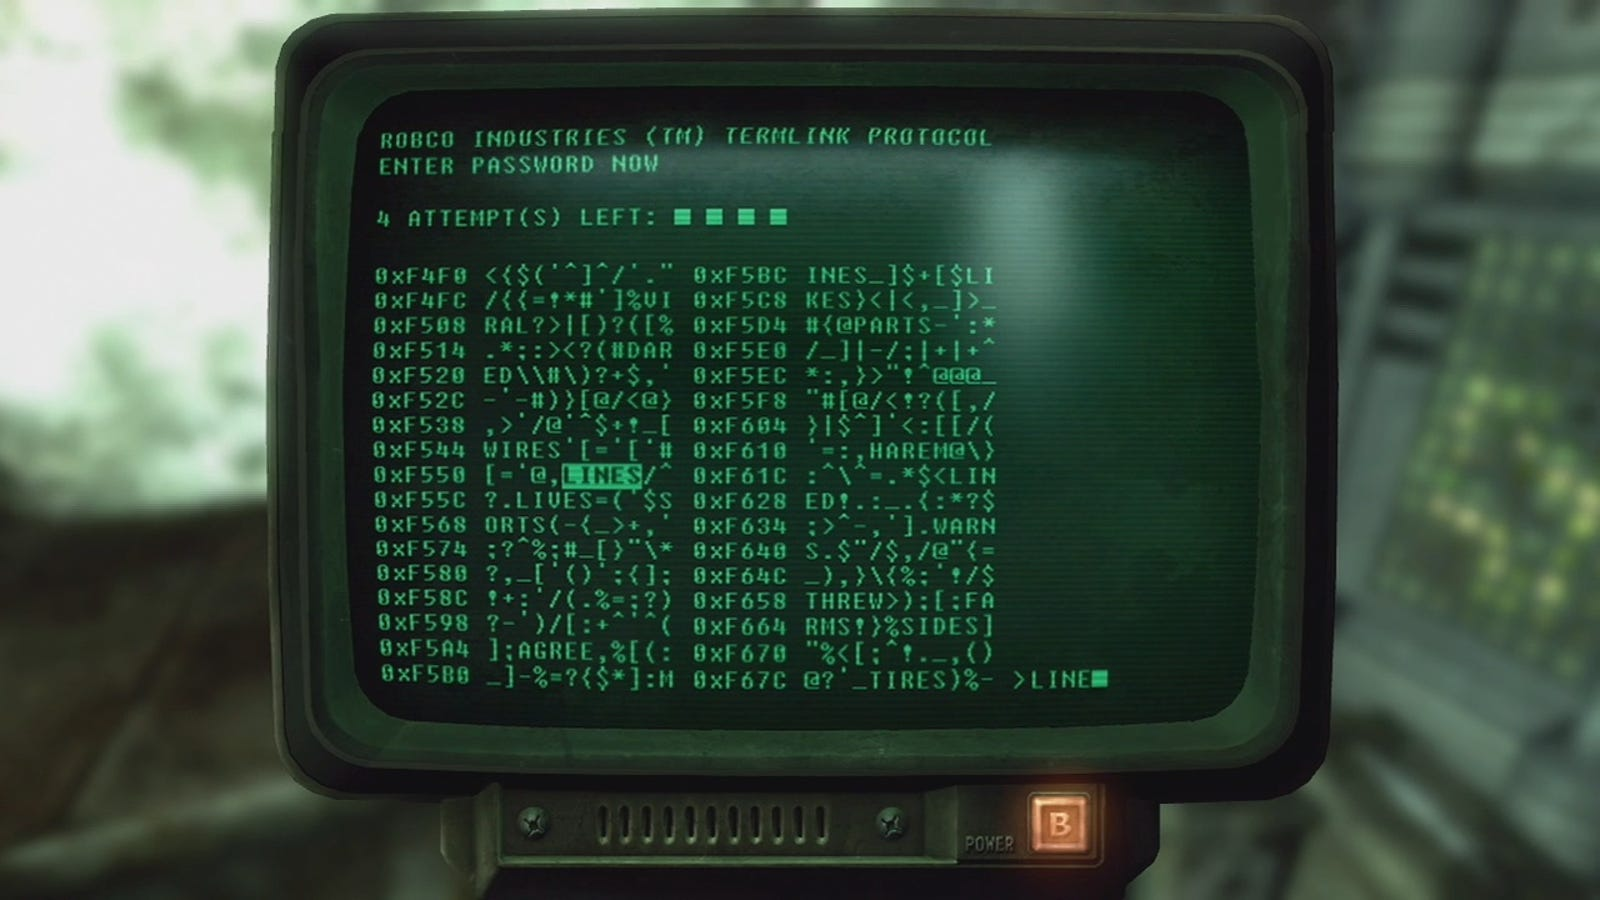 CNN Shows Fallout Computer Terminal In A Video About Russian